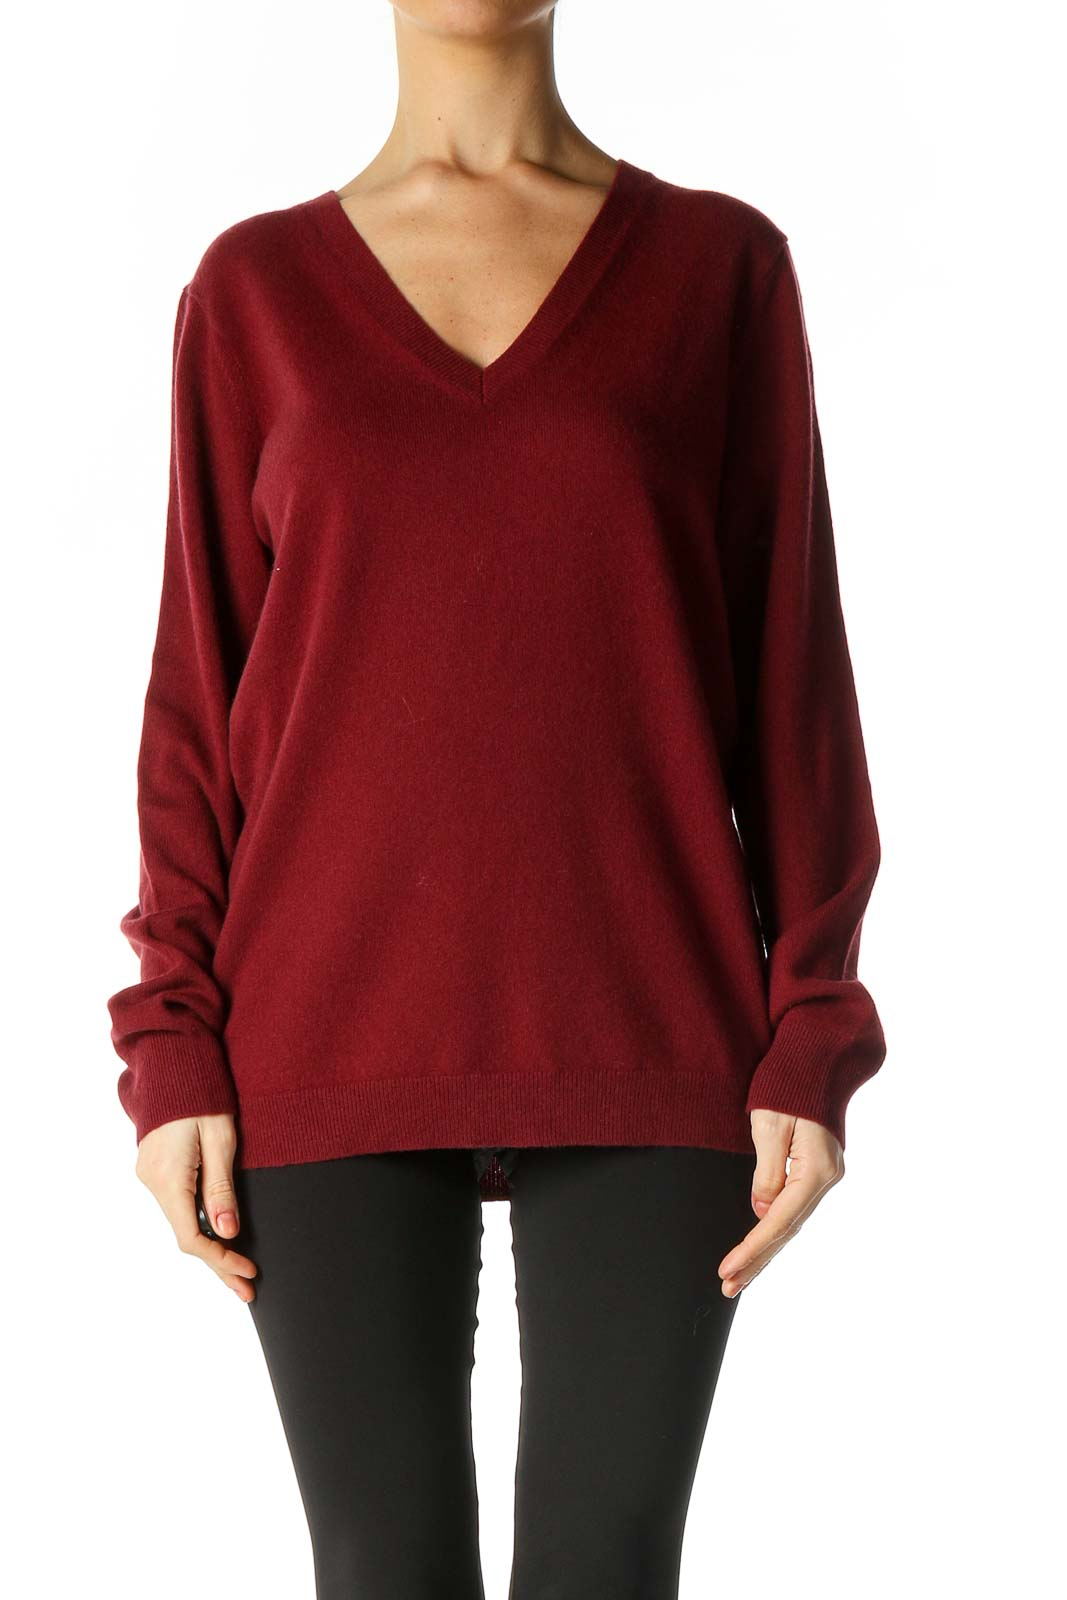 Red Solid Sweater Front